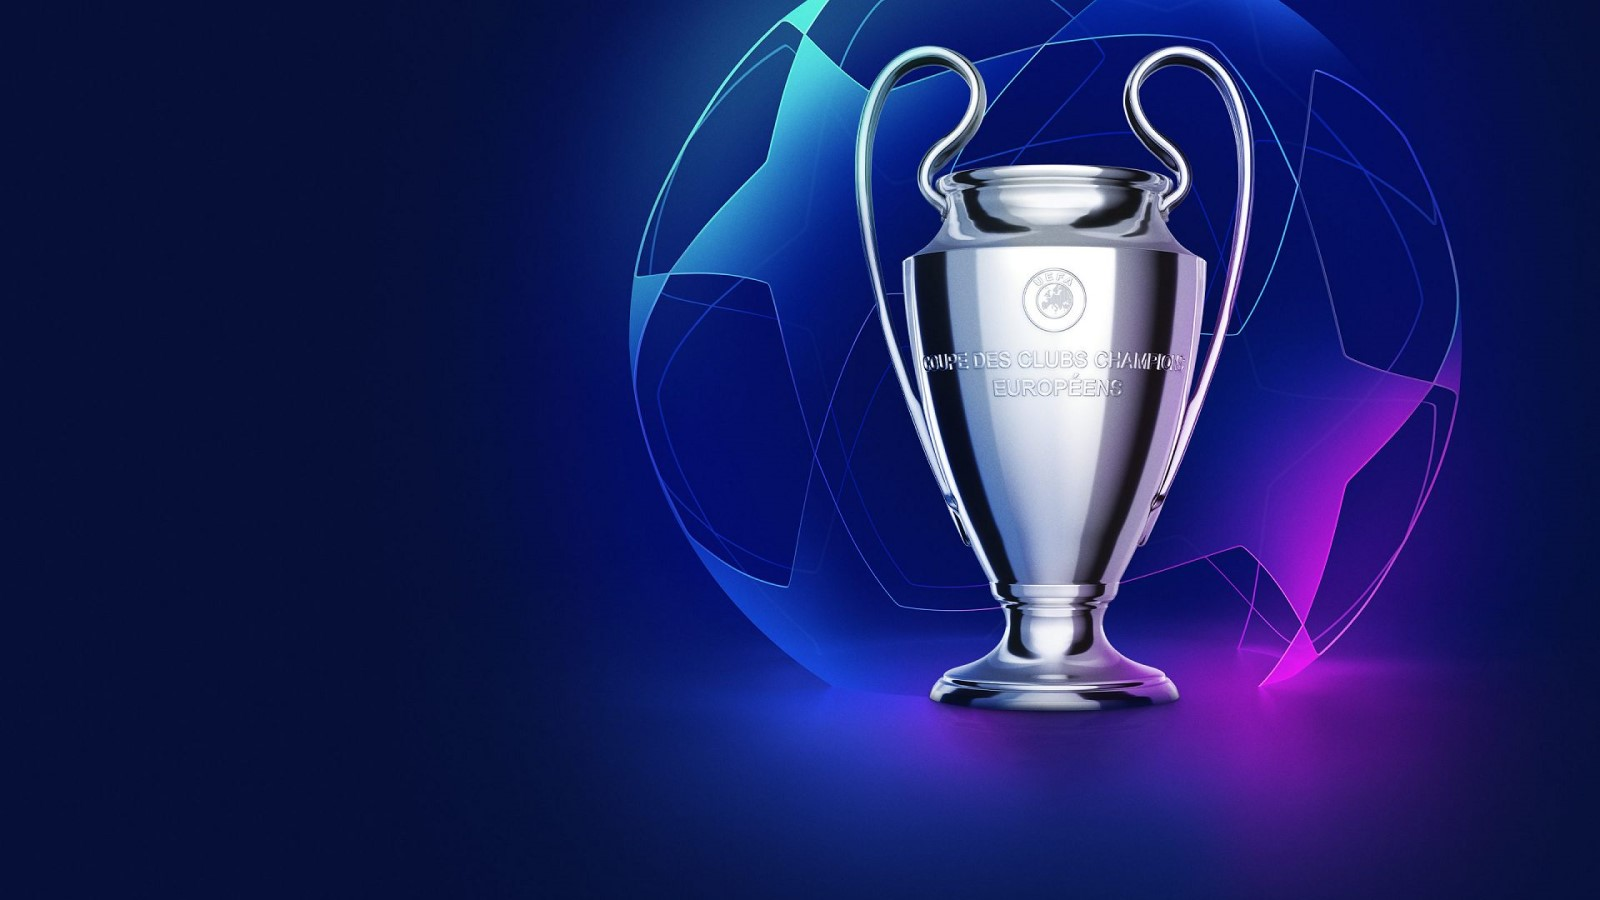 How To Watch 2020 2021 UEFA Champions League Season Live